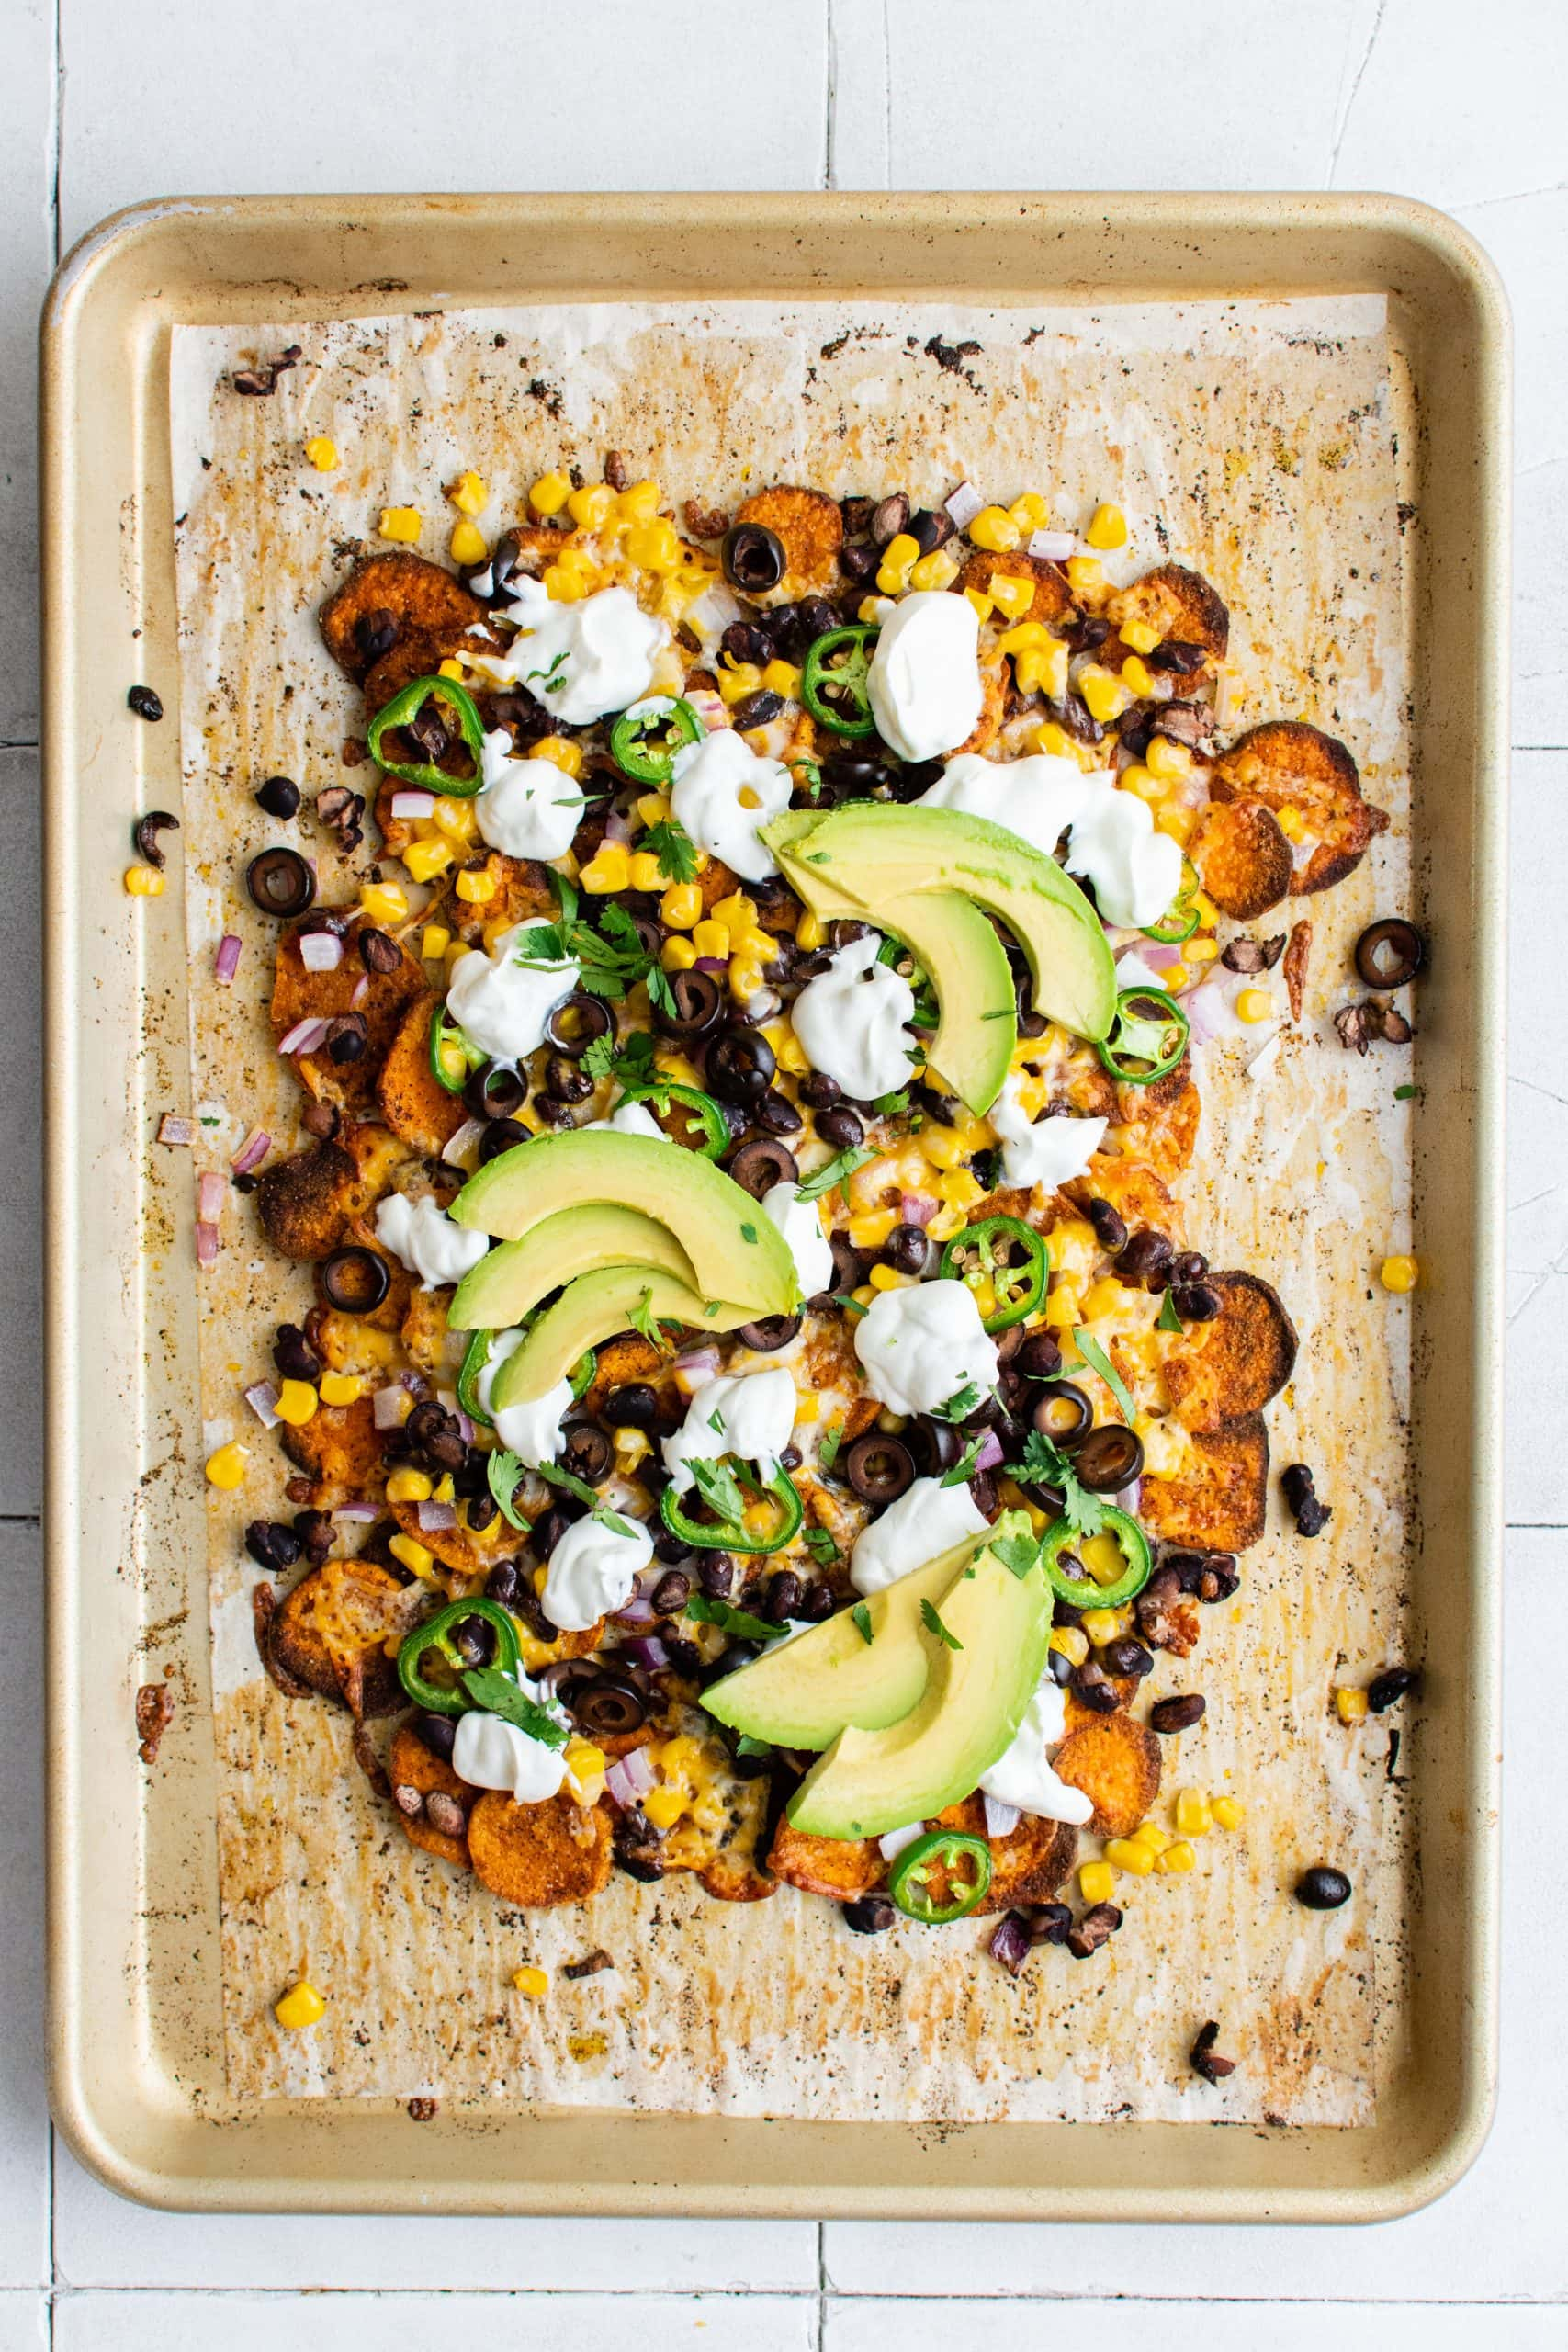 picture of sweet potato chip nachos on a plate with jalapenos, beans, corn, cheese, sour cream, avocados, and sliced limes